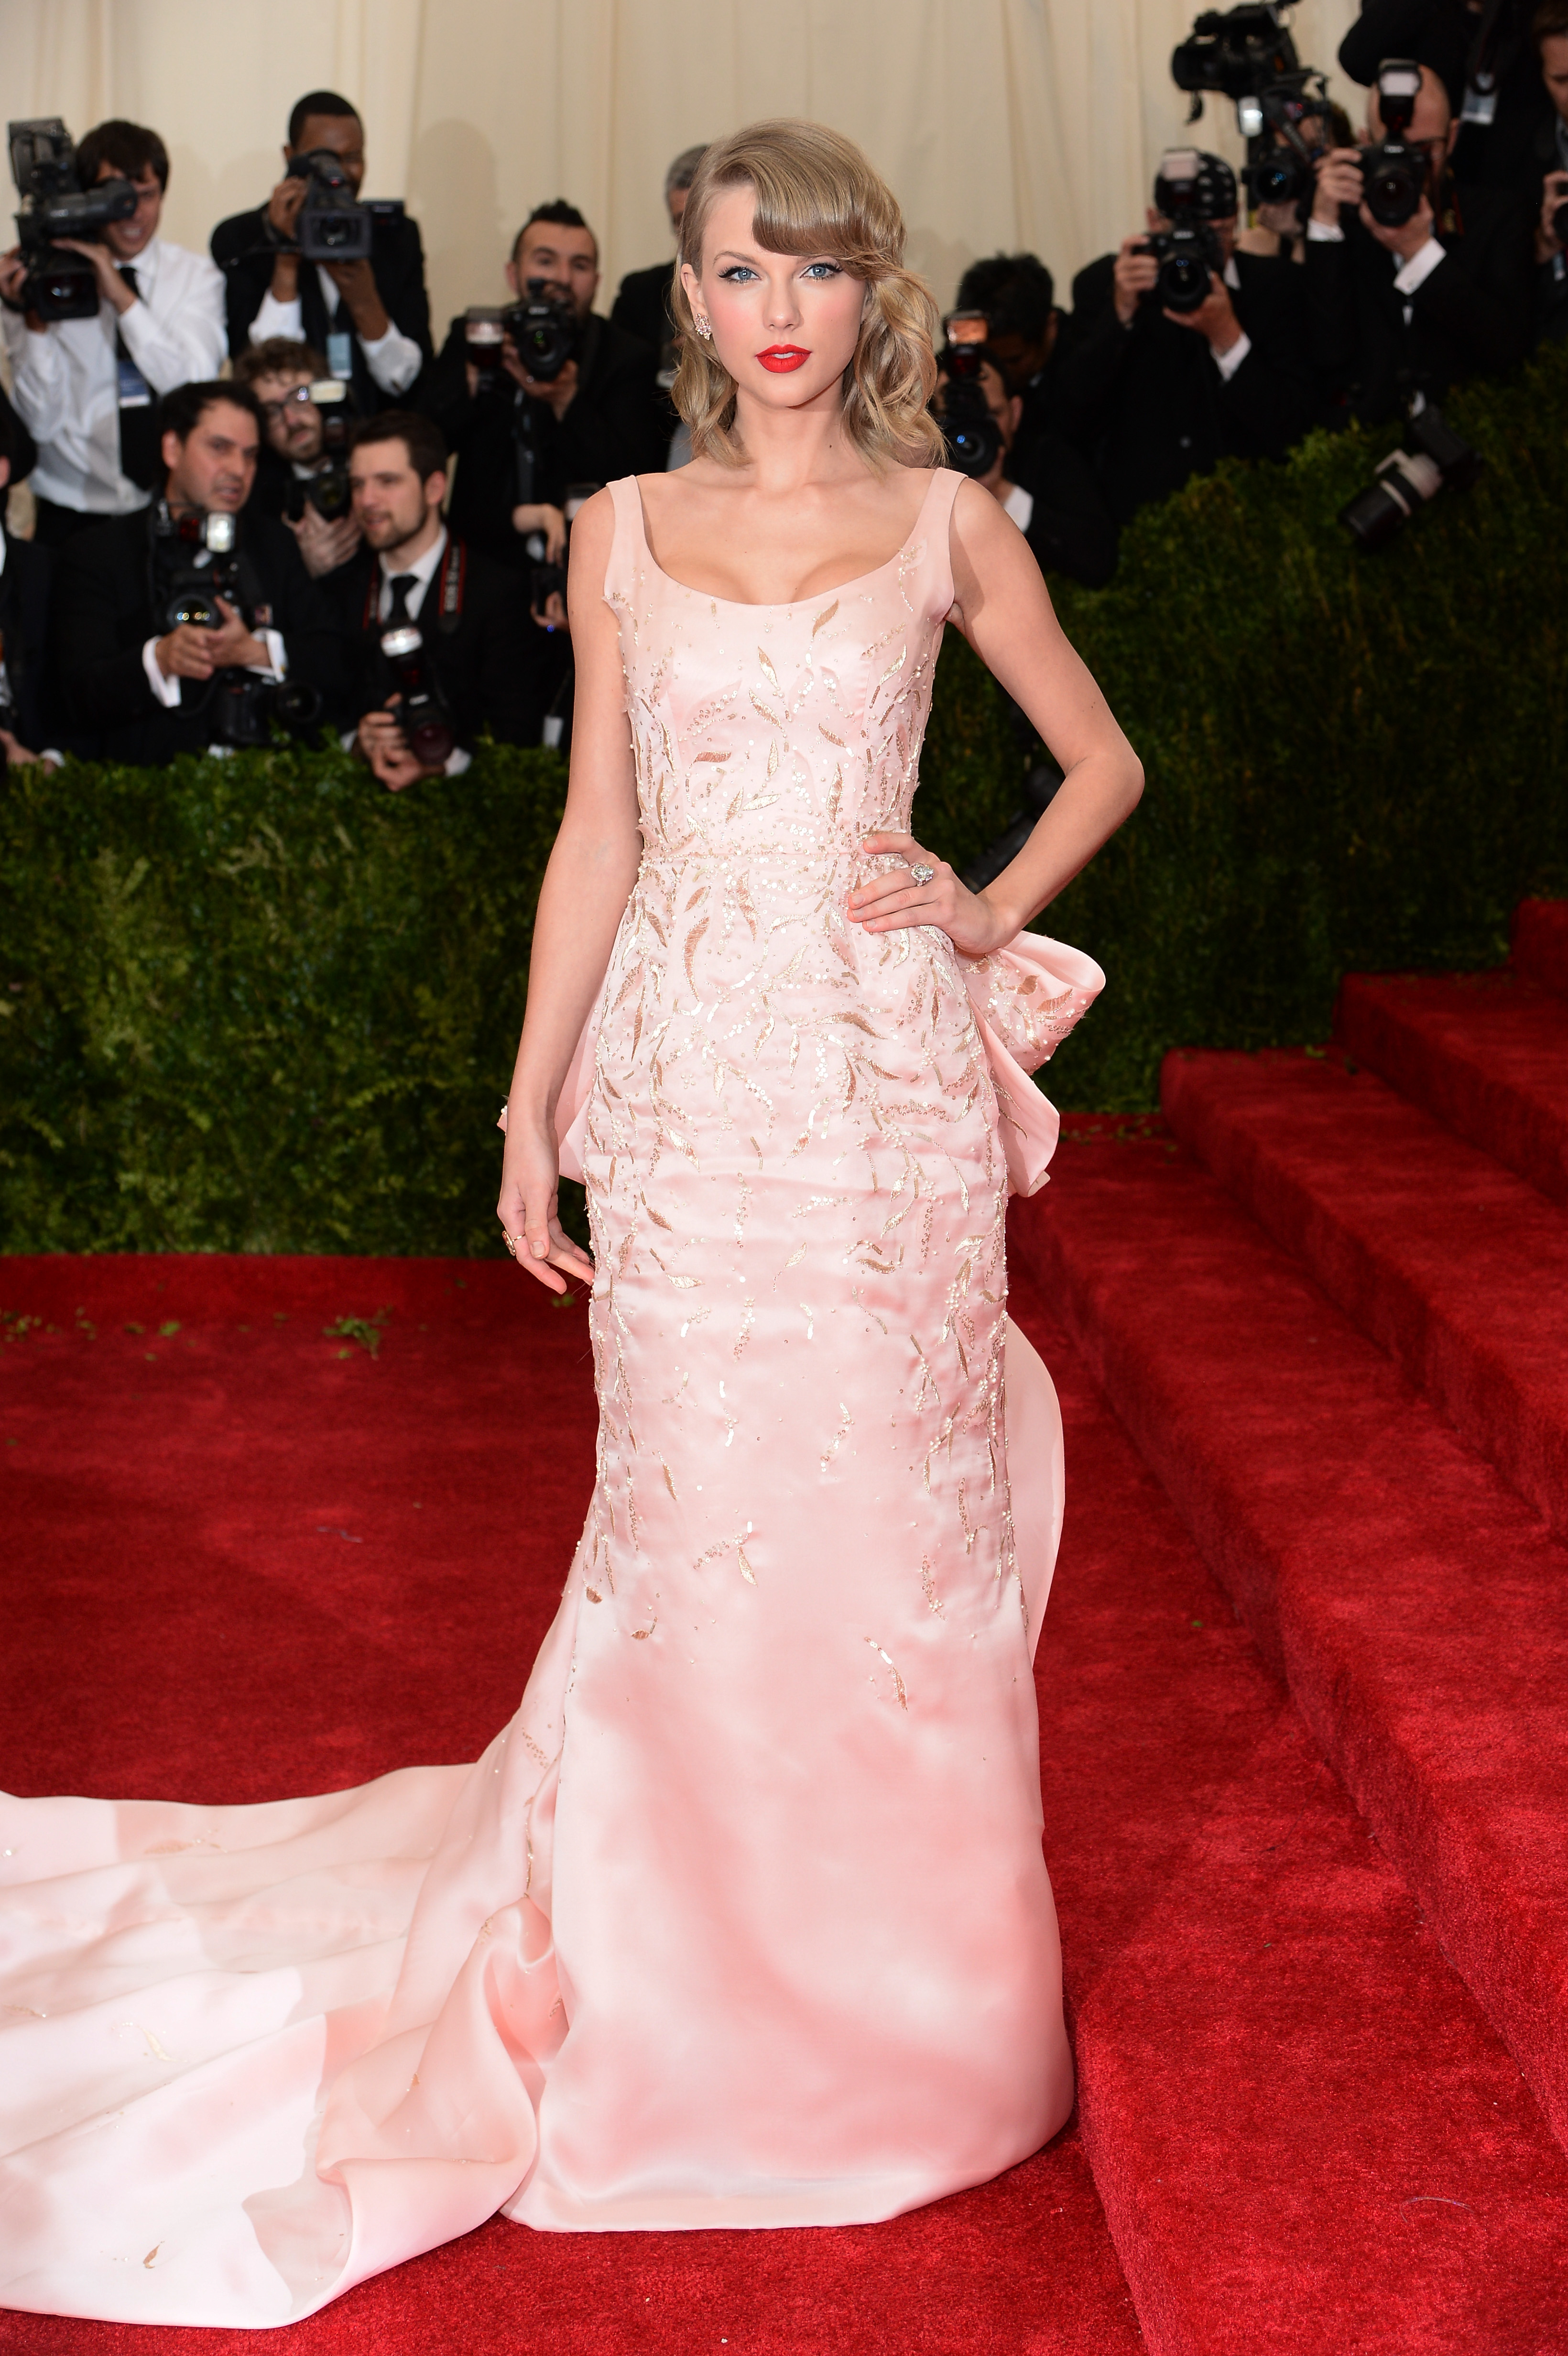 All the 2014 Met Gala Gowns: Prepare Yourselves, Couture Nerds